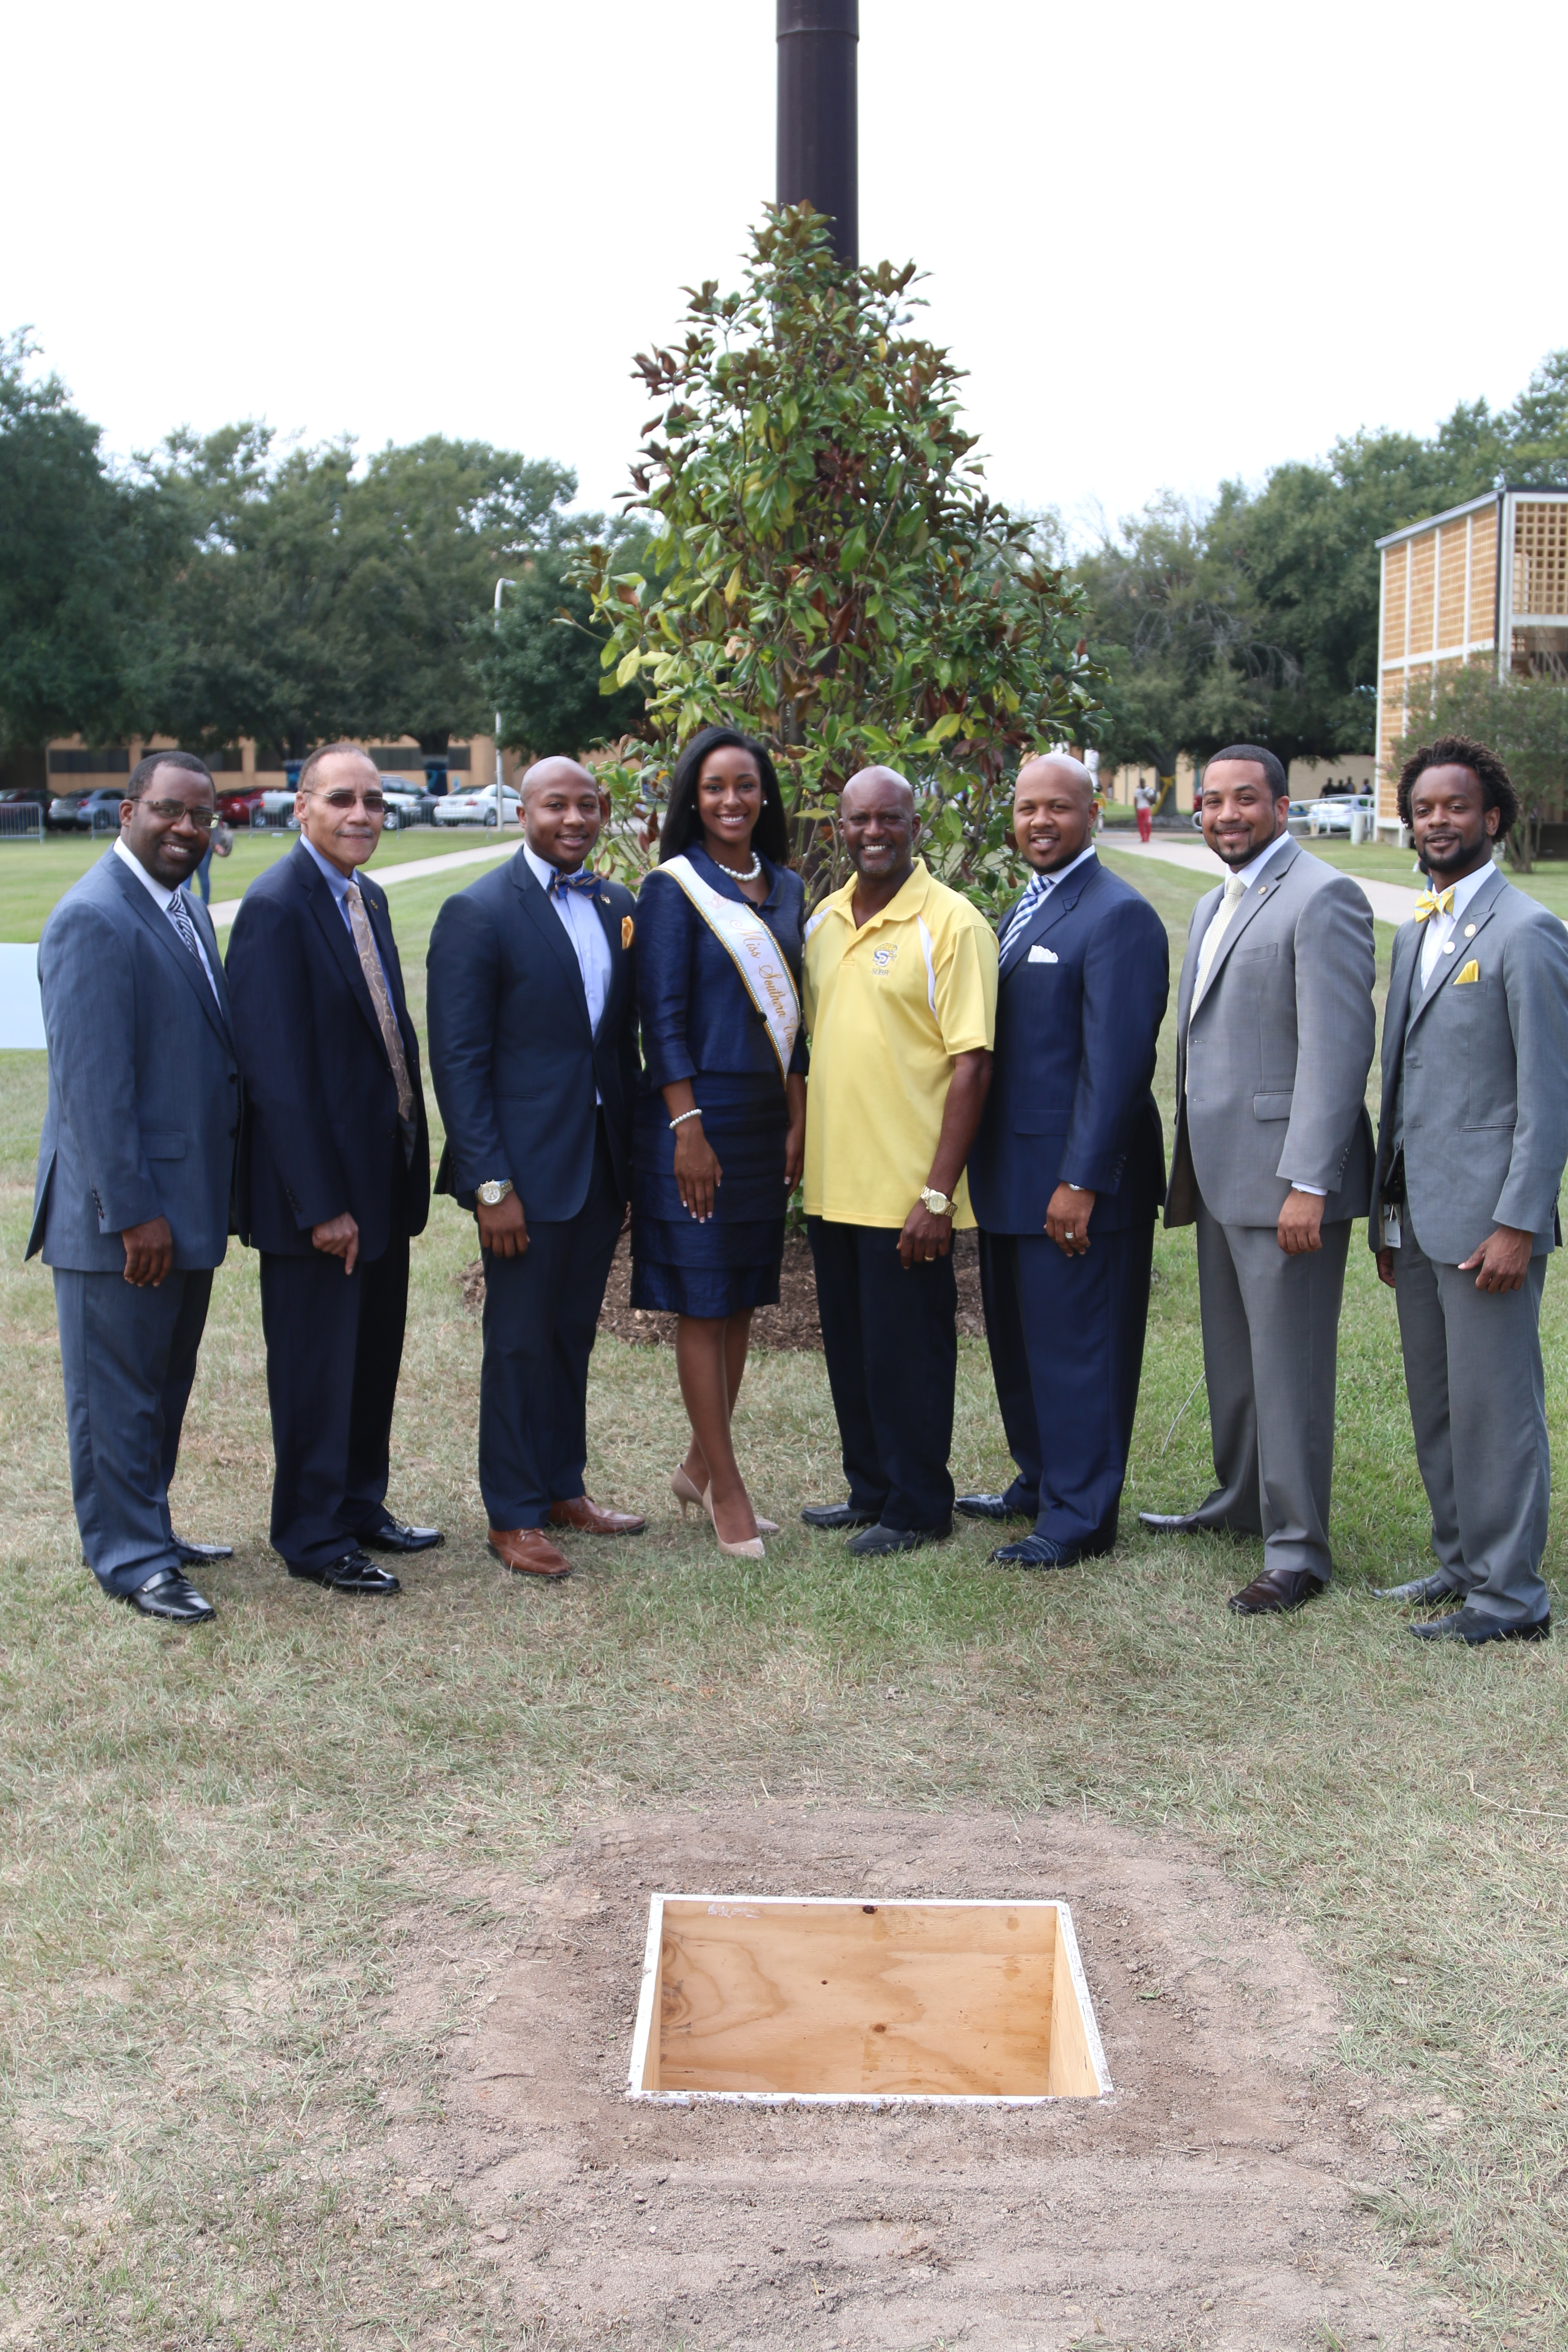 In the photo from left to right: Assistant Vice Chancellor of Student Affairs Anthony Jackson, SUBR Acting Chancellor Flandus McClinton, the 2014-2015 Student Government Association President Nicholas Harris, 2014-2015 Miss Southern University Shanice Mae Sam, Director of Landscaping Services Cordell Veal, Vice Chancellor of Student Affairs & Enrollment Management Dr. Brandon K. Dumas, Dean of Students Marcus A. Coleman, and Director of Student Life Jonas Vanderbilt.